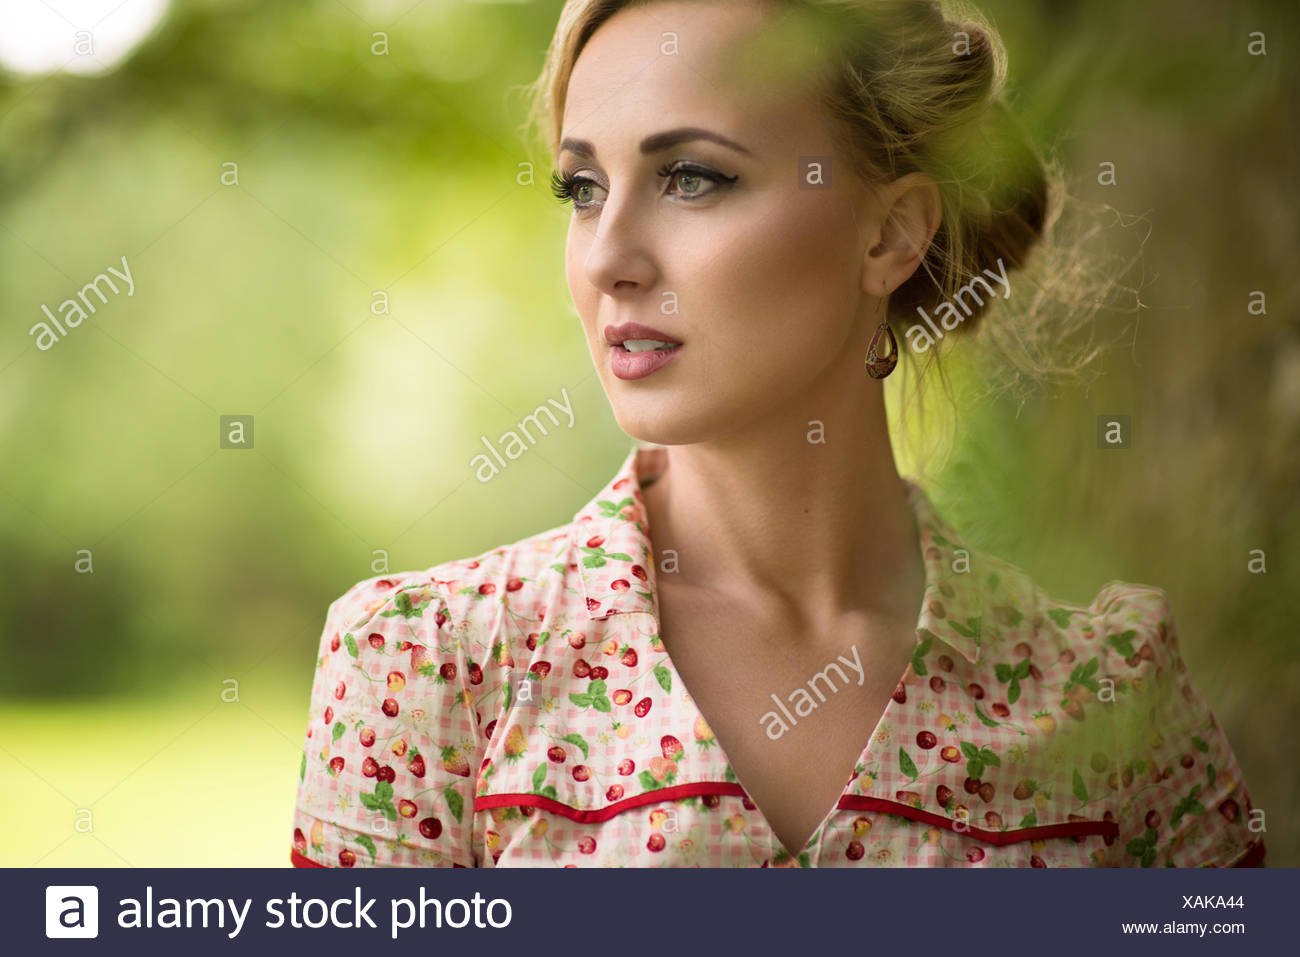 Portrait of a young woman looking away - Stock Image